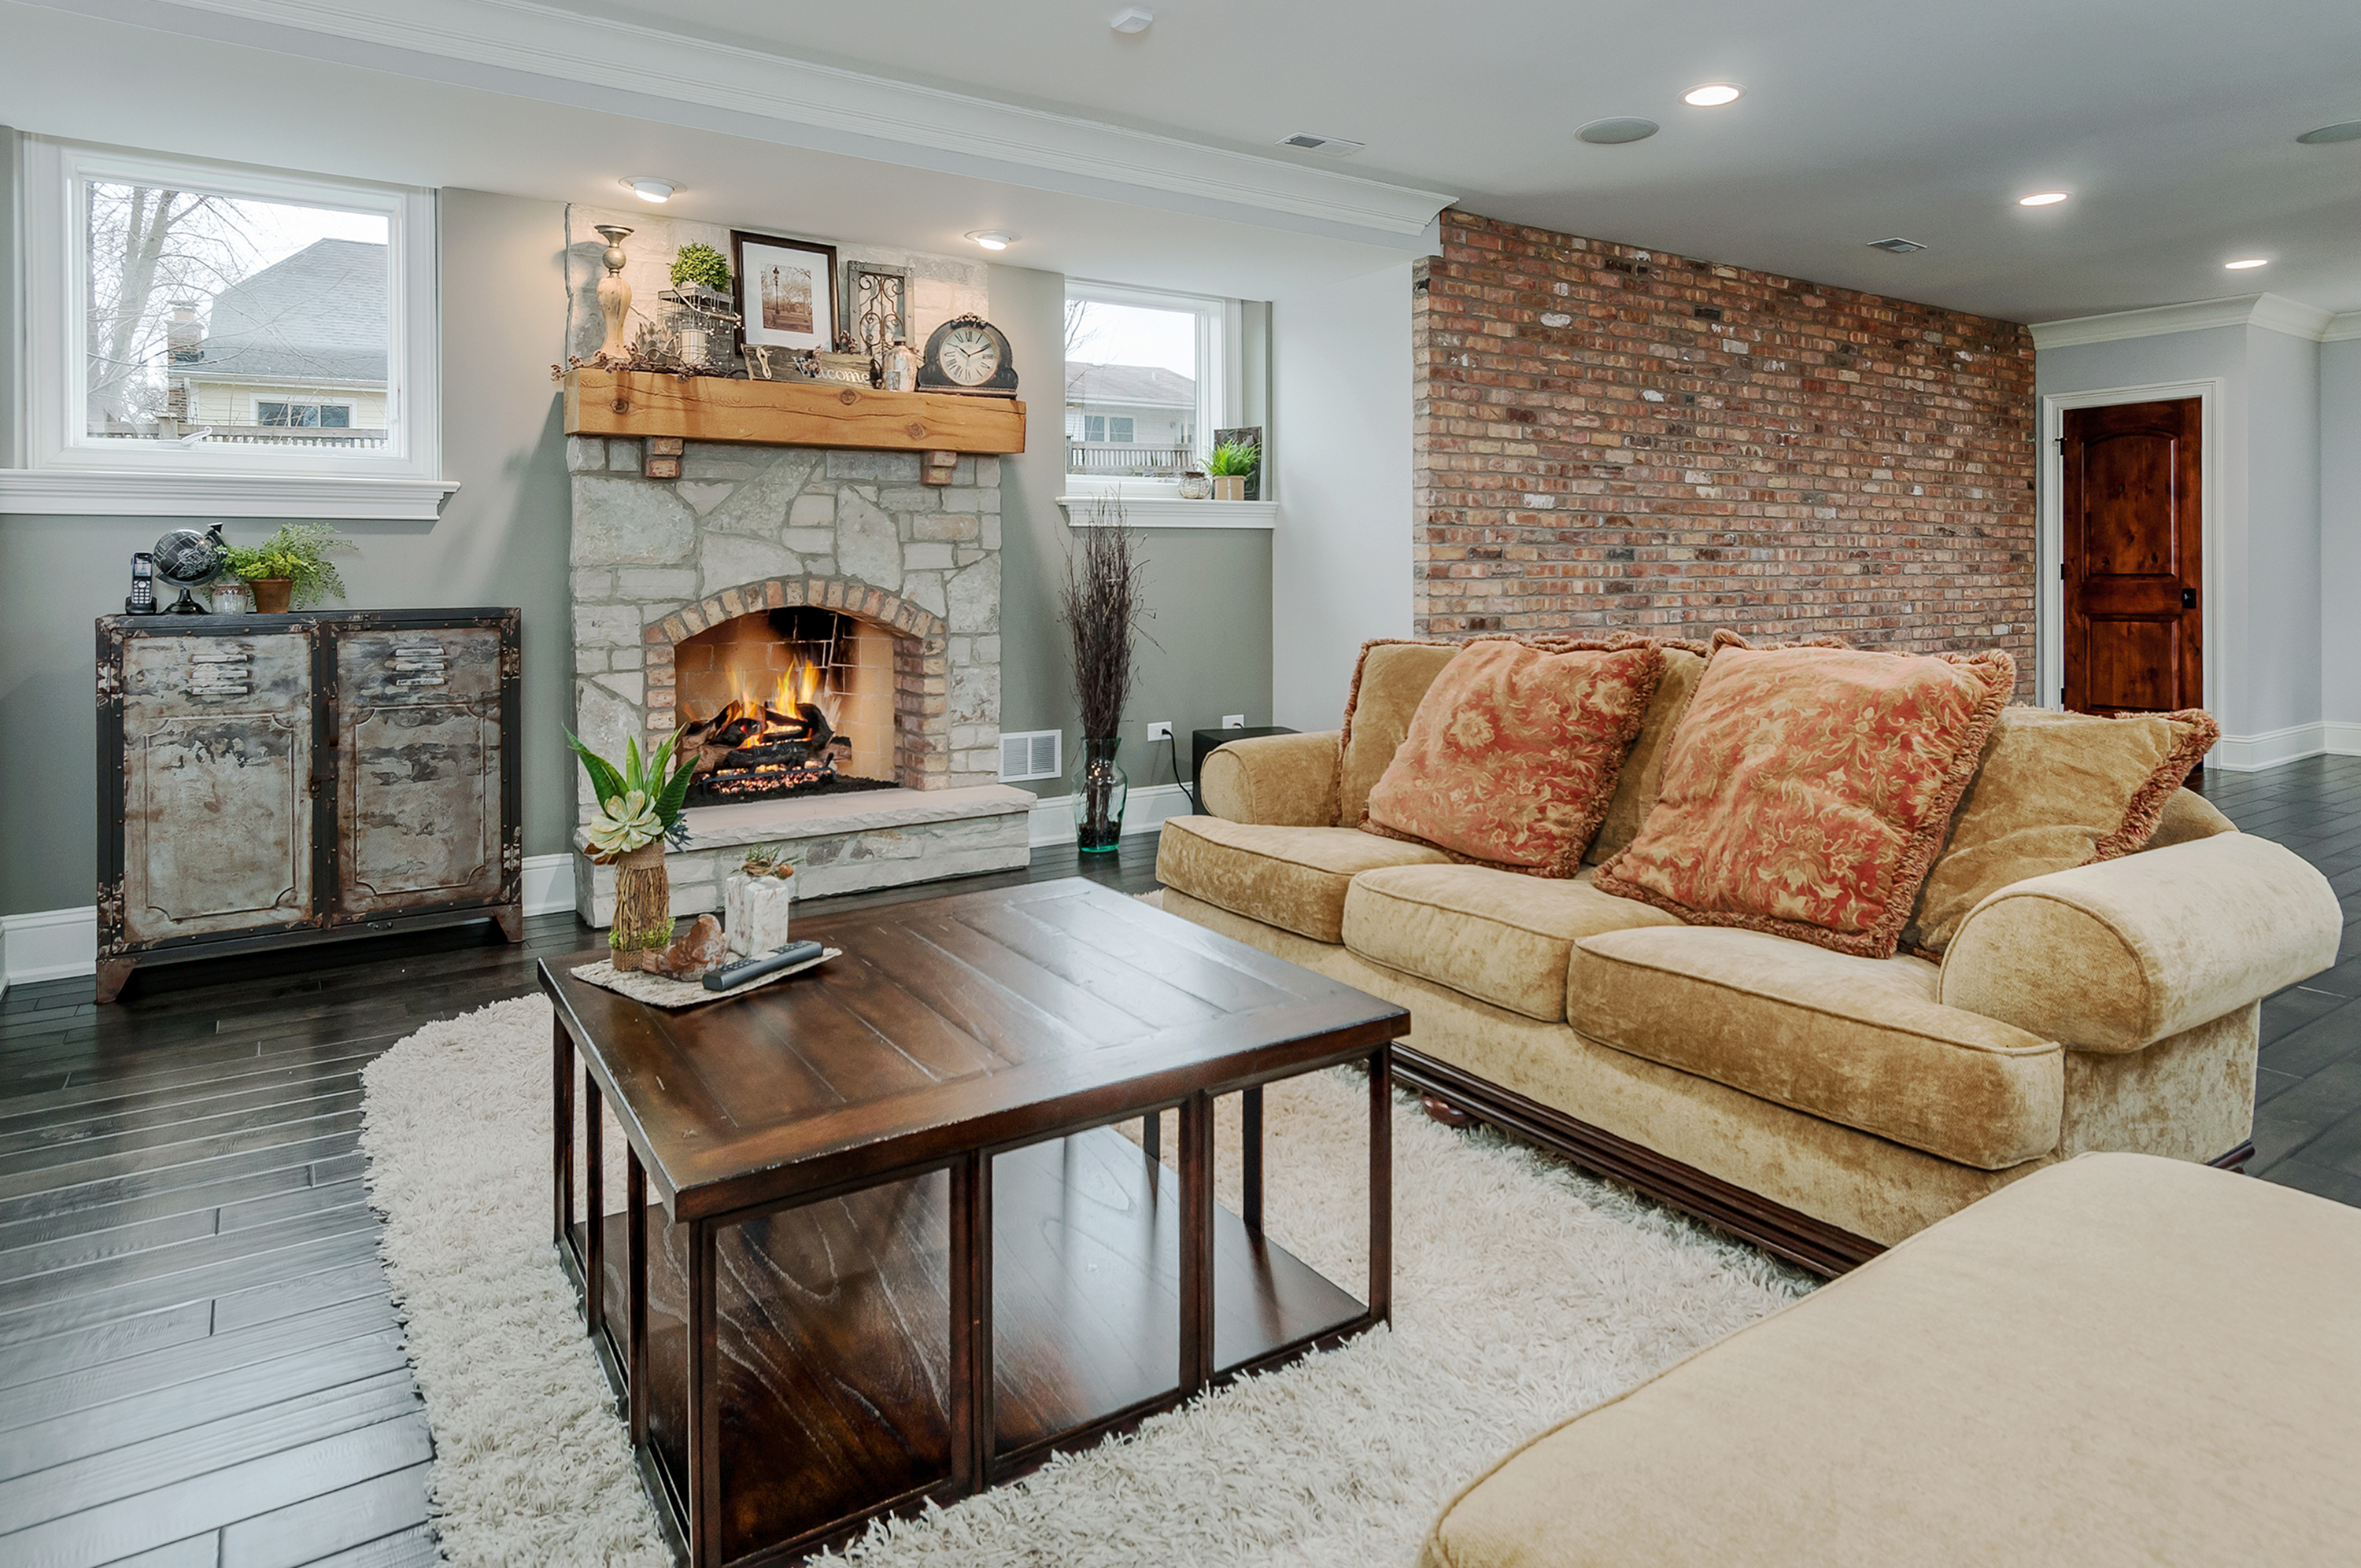 Potpourri of New Images. A warm and inviting family room in Naperville, Illinois